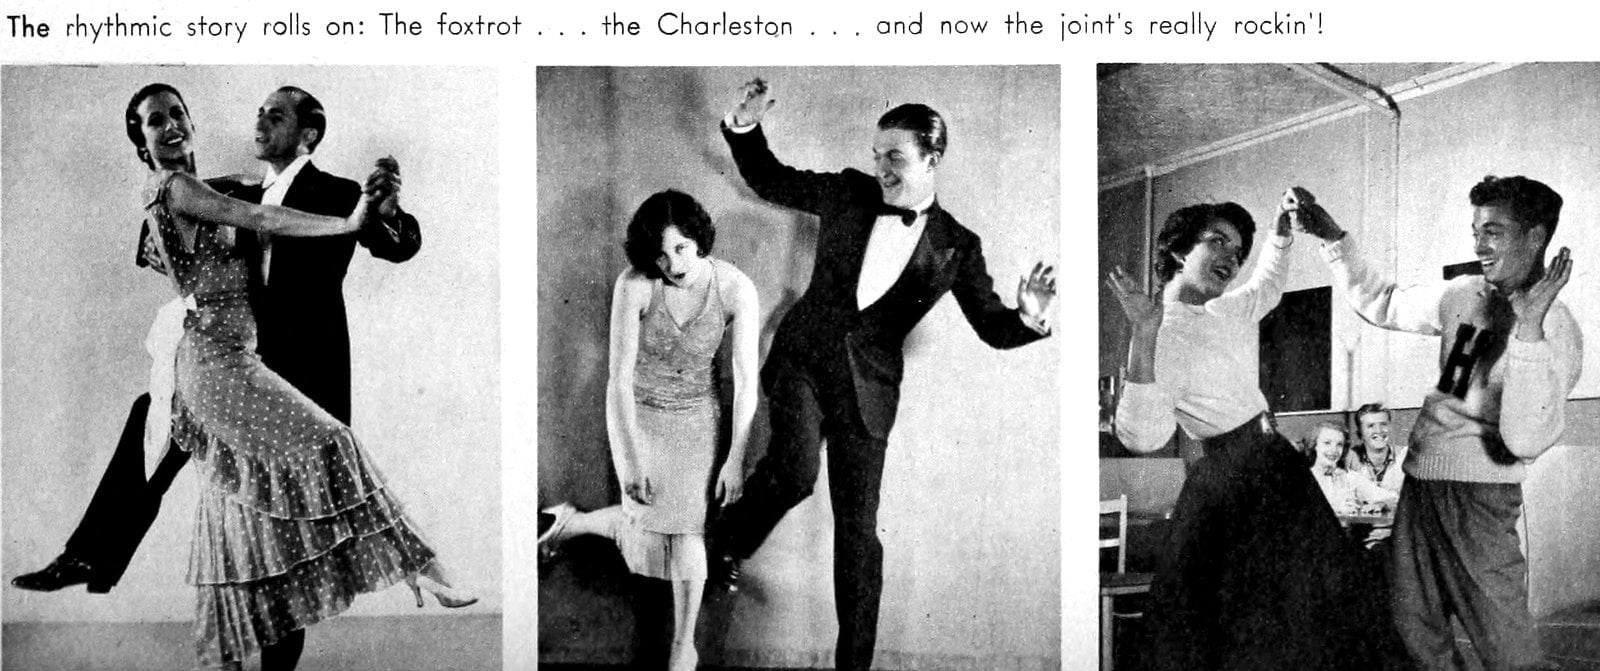 Rock n roll music in the 1950s (2)